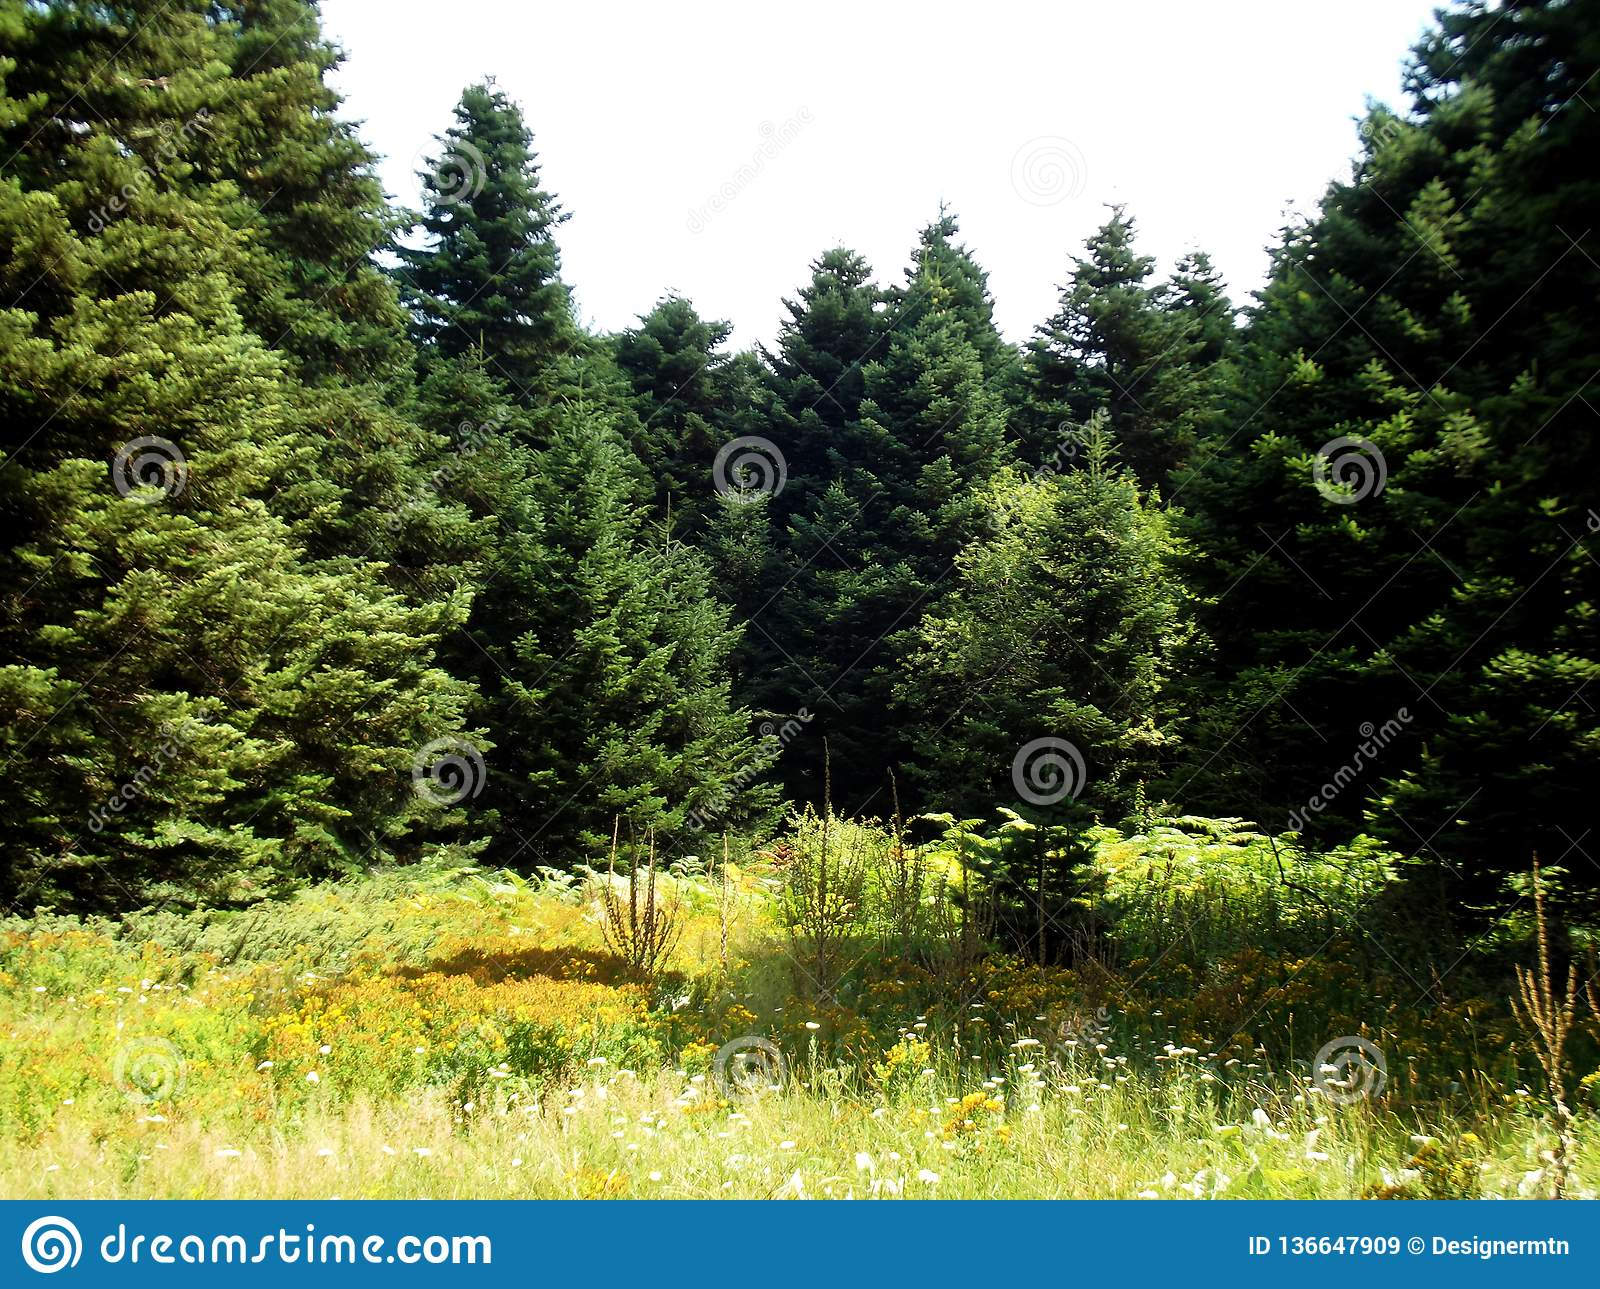 Natural Sunlight Green Forest And Yellow Meadow Stock